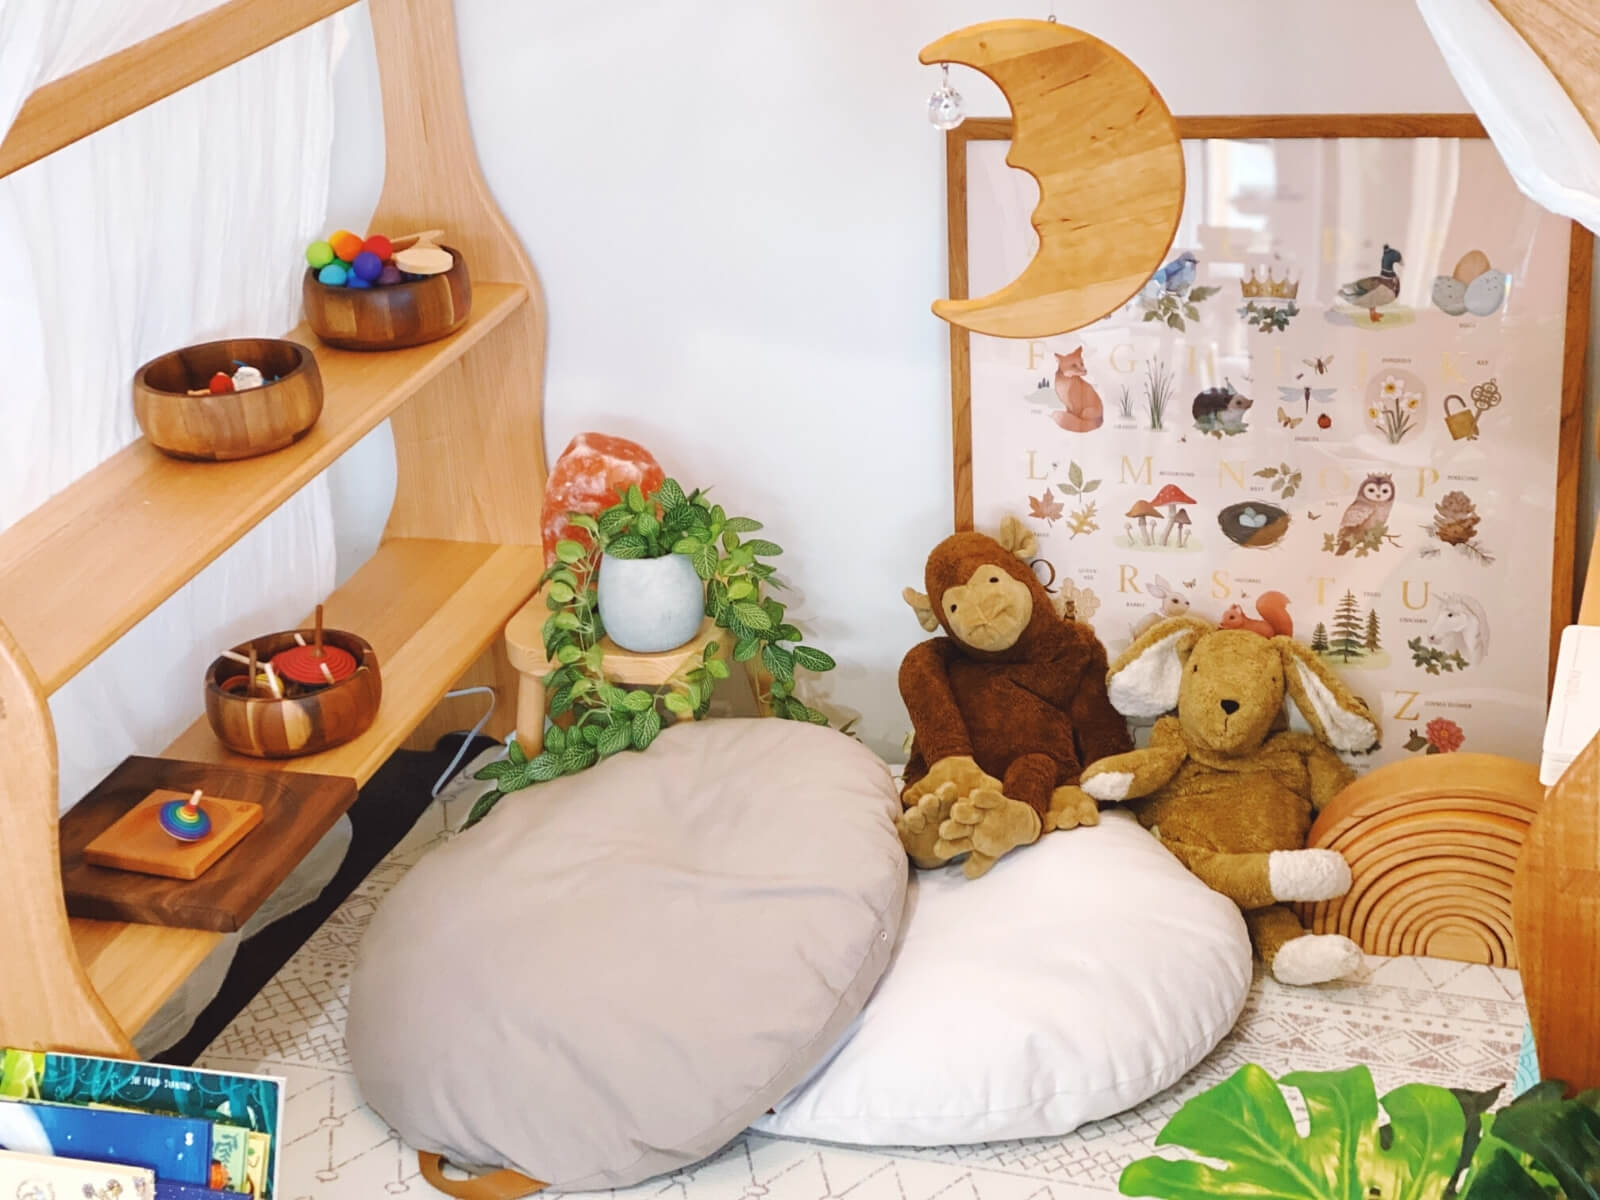 Provide materials and toys that promote mindfulness.